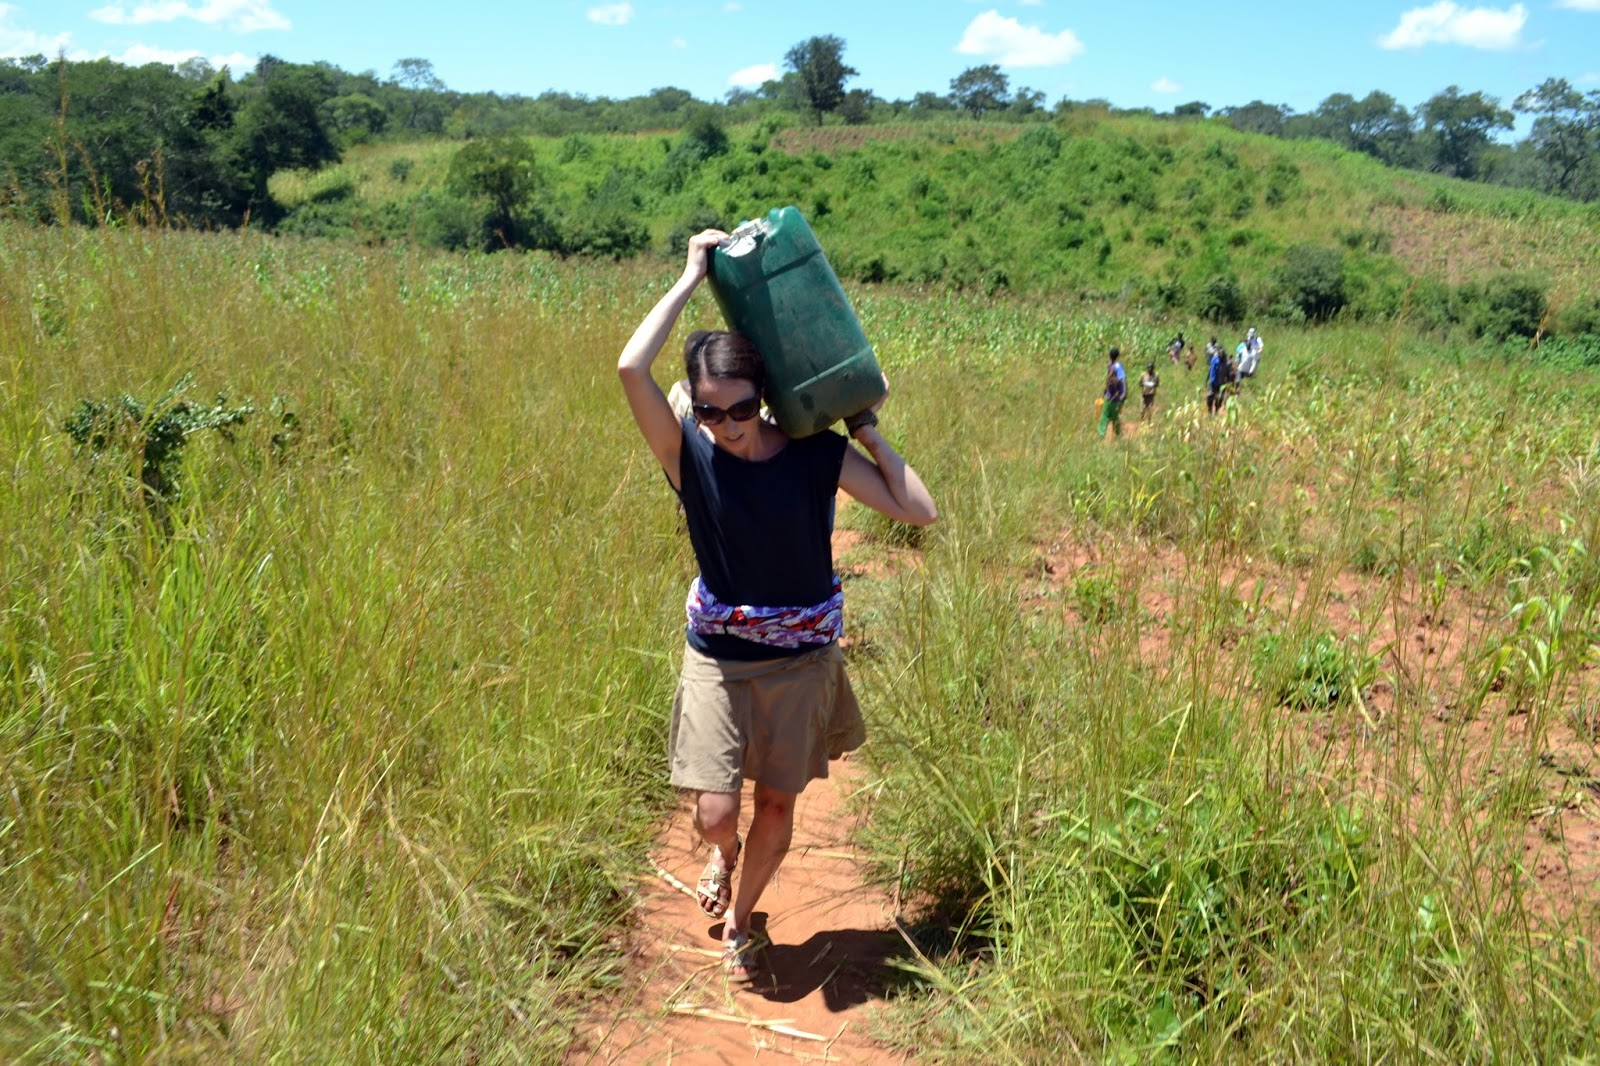 walking for water on the red dirt of africa